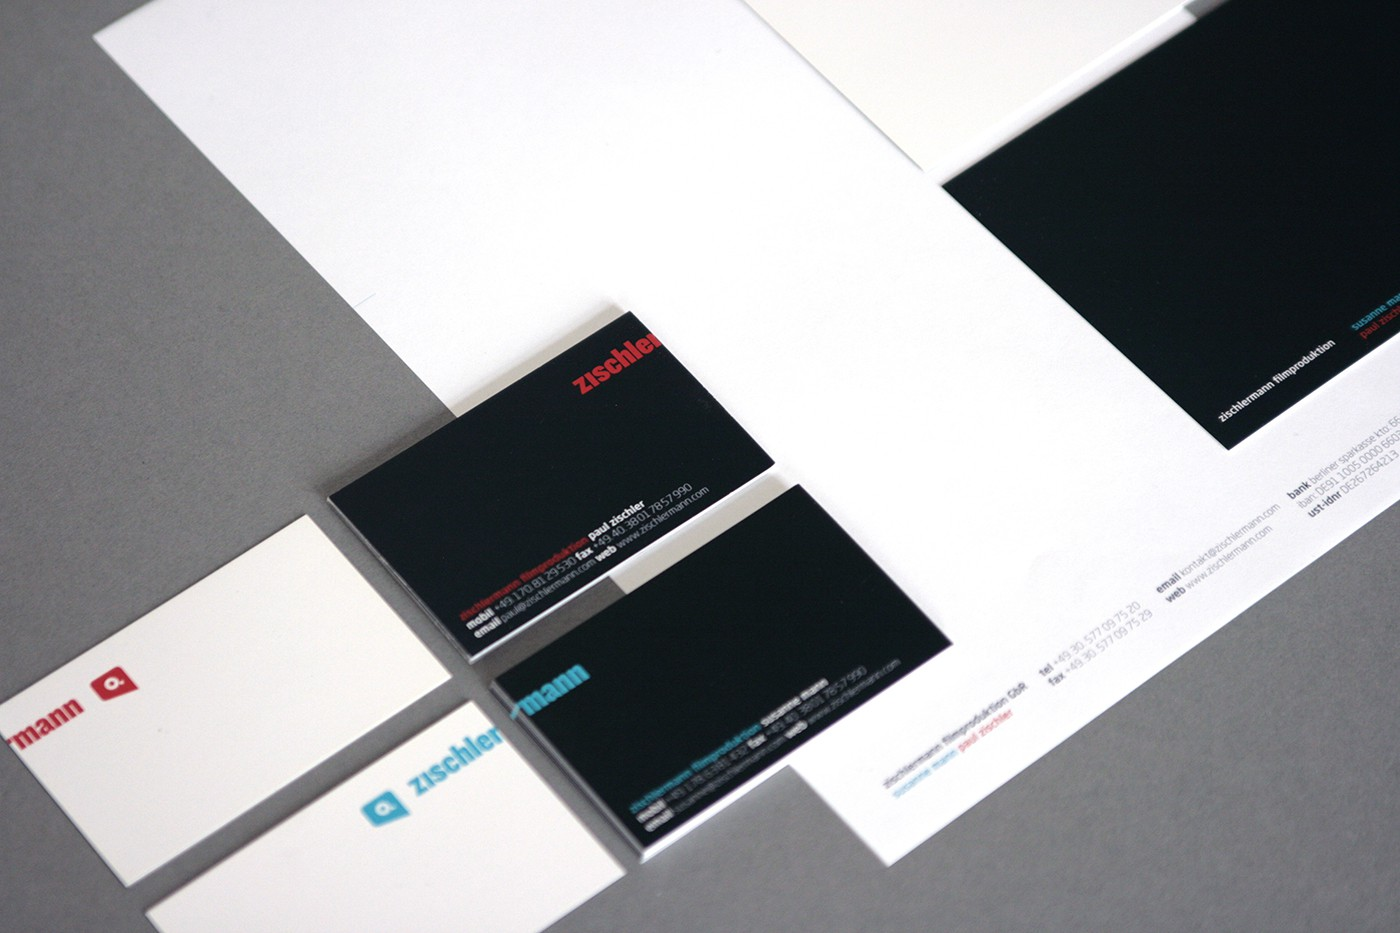 zischlermann brand design by upstruct